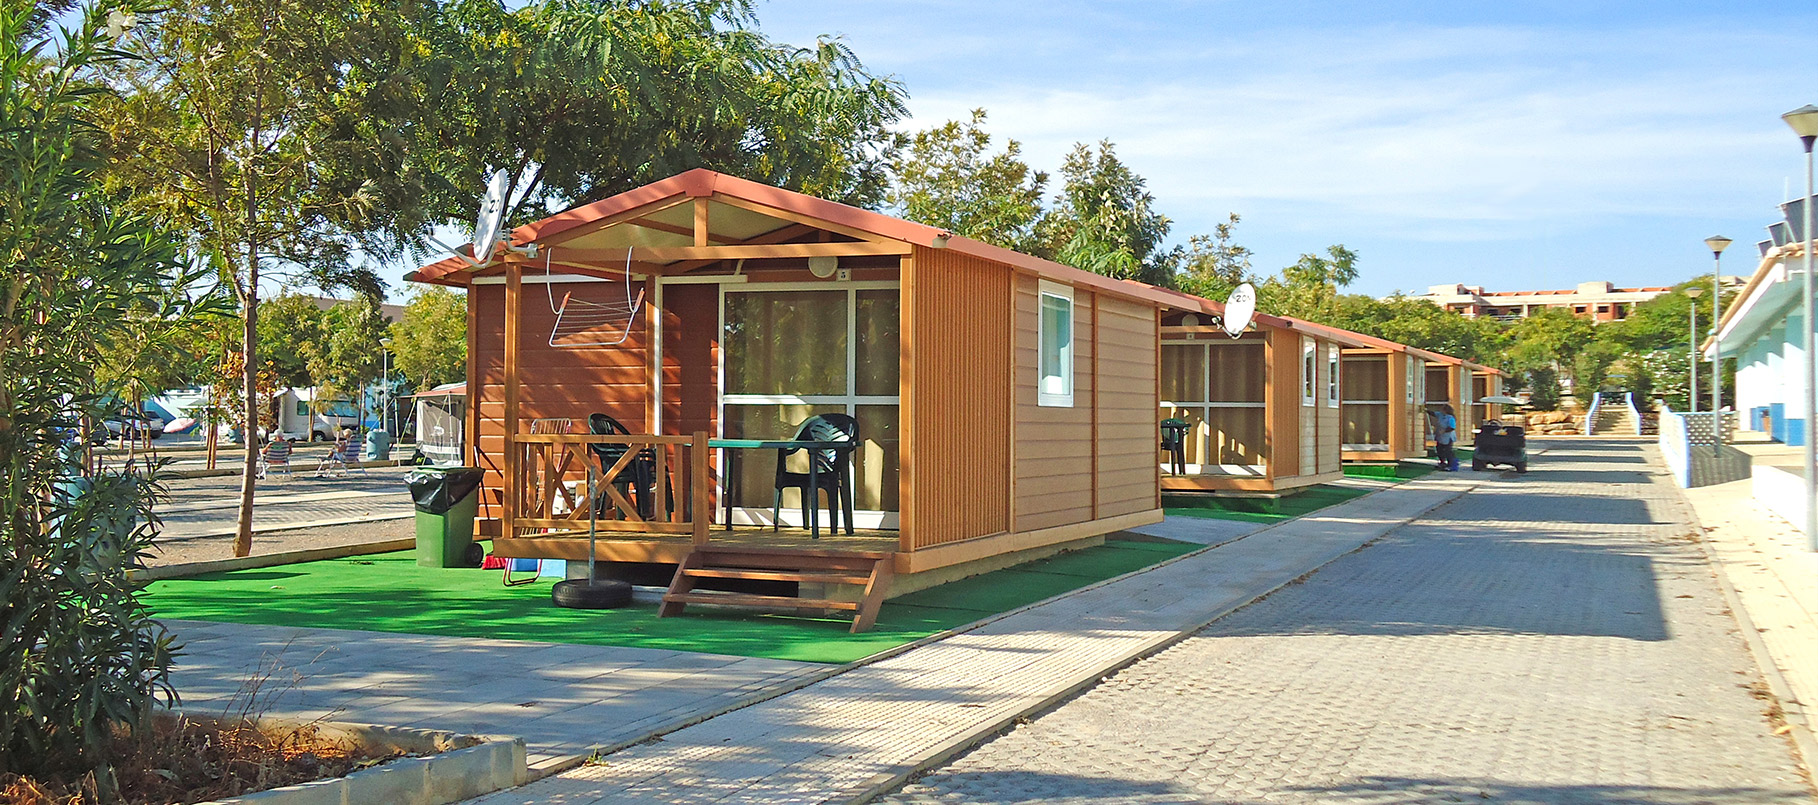 Bungalows for rent in Excellent winter sun campsite in Algarve - Portugal